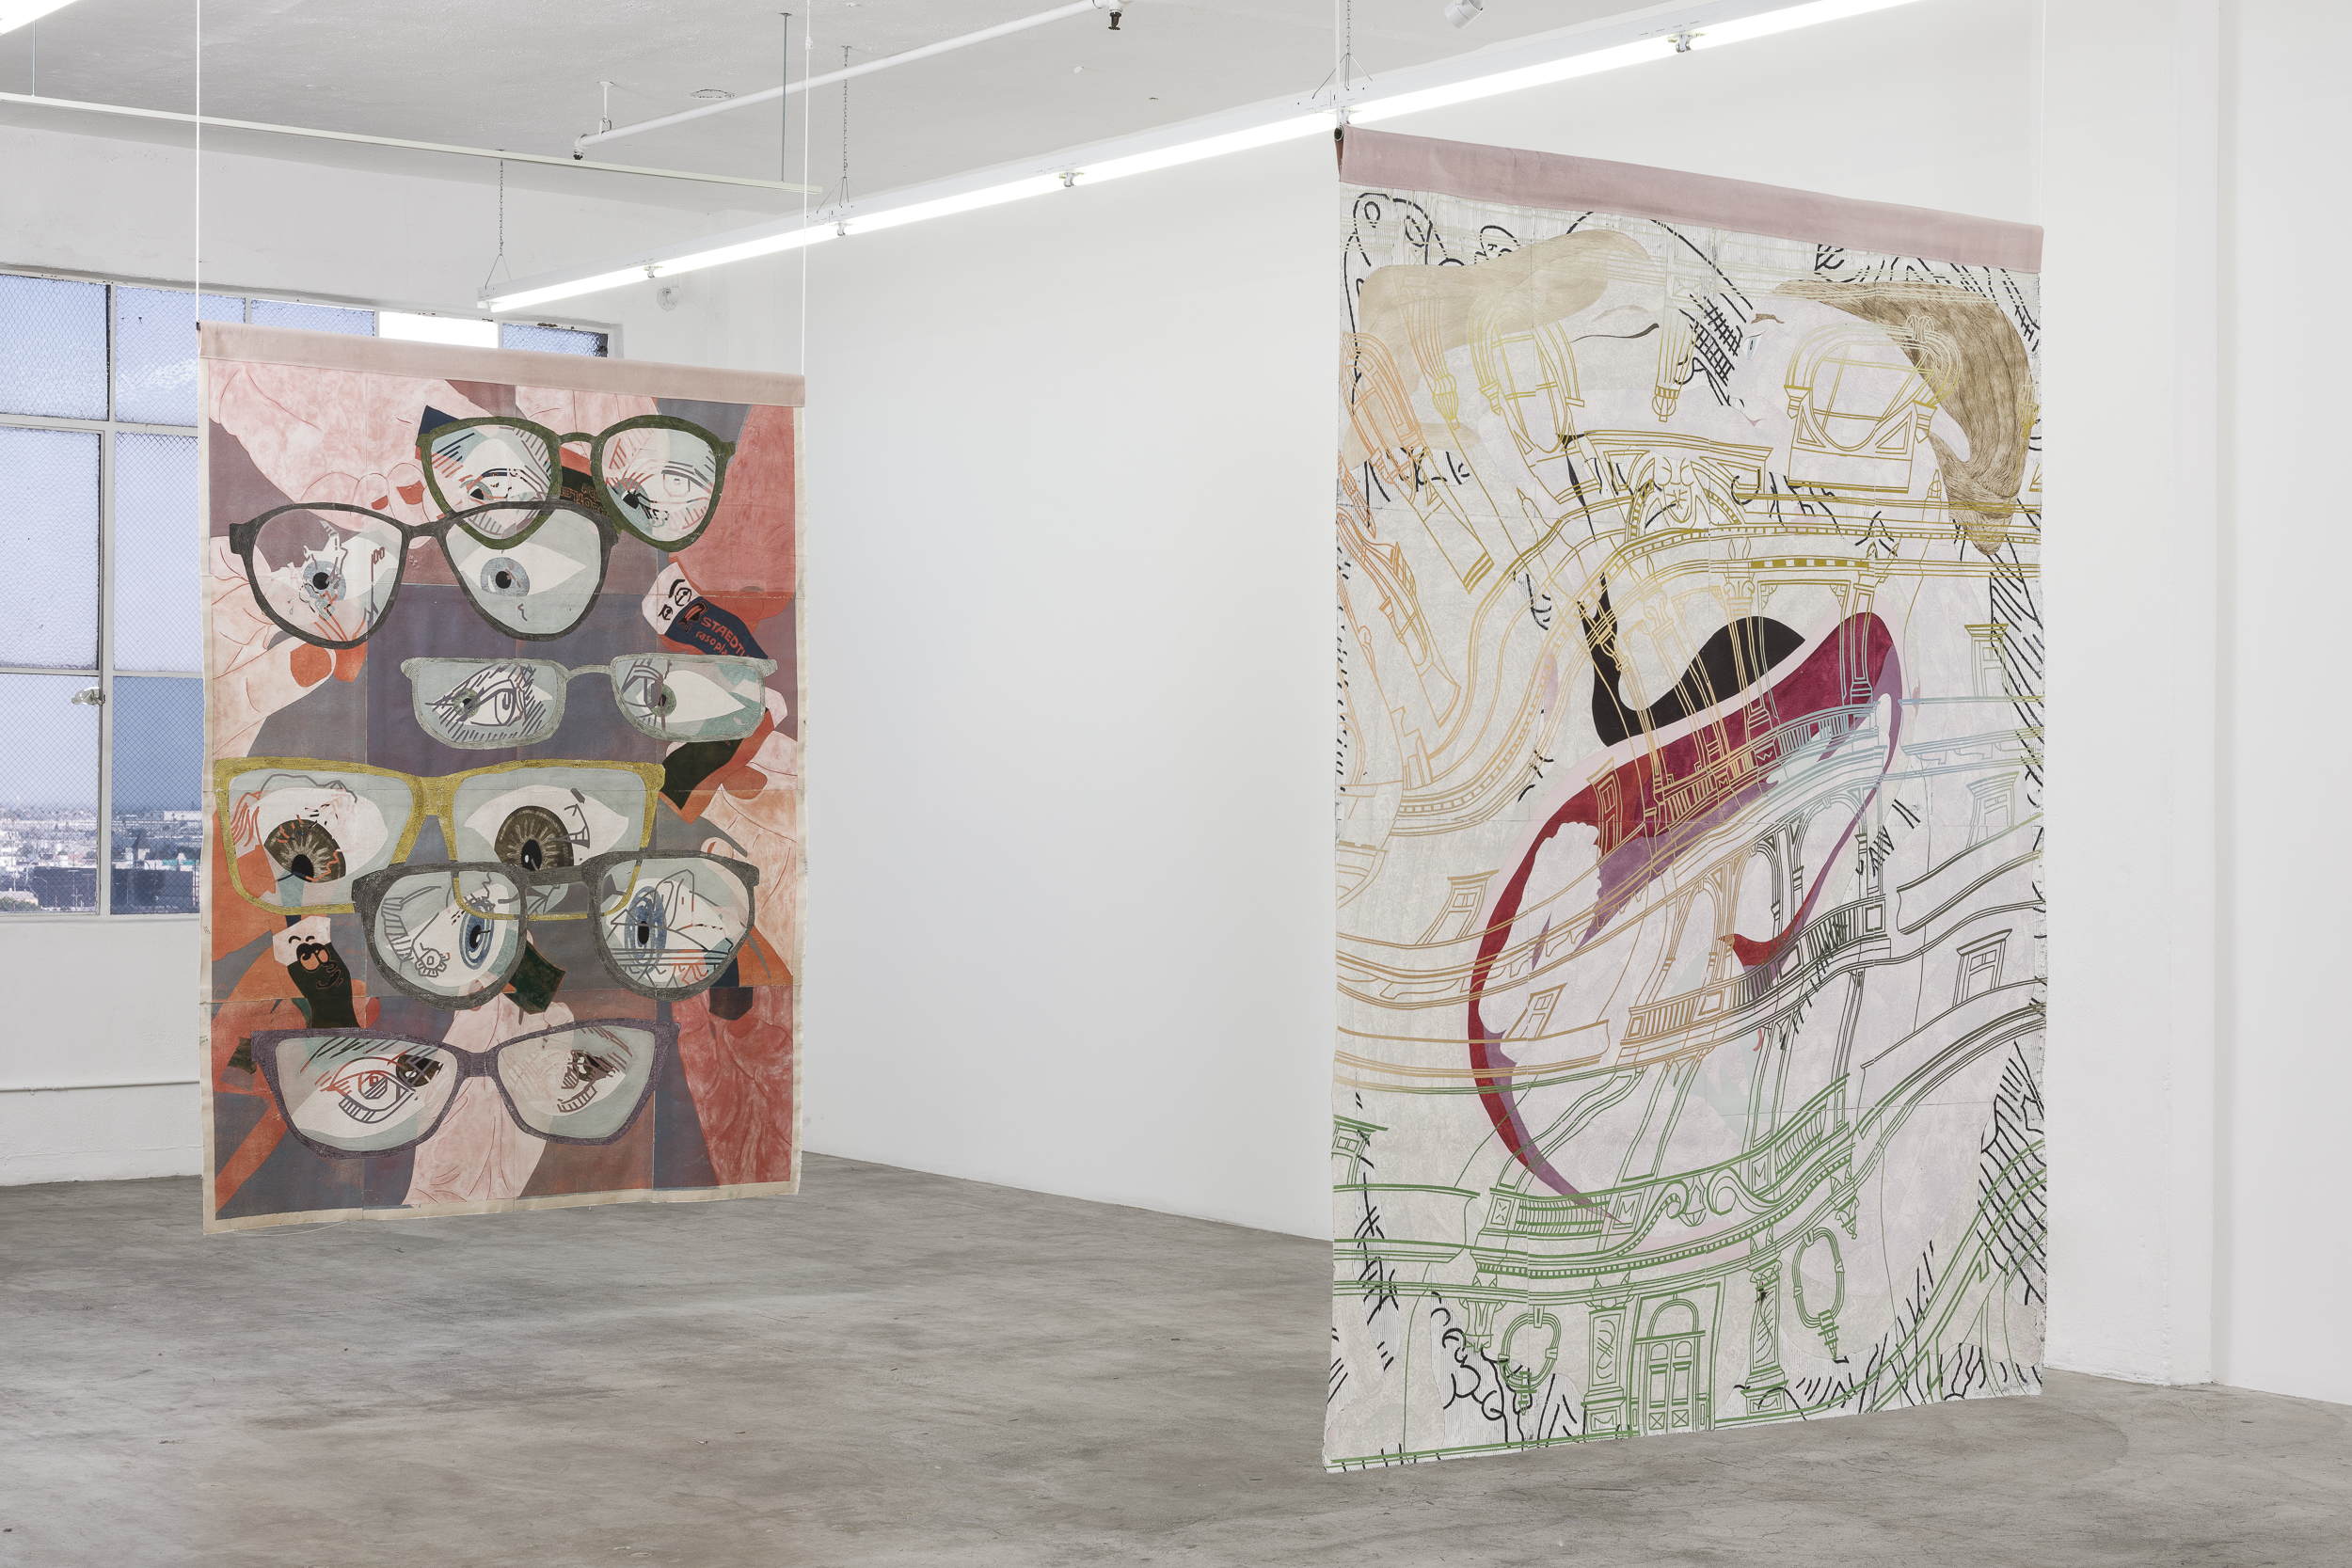 Pieces of Work, 2021, Installation view, Los Angeles, Courtesy of the artist and the Gallery